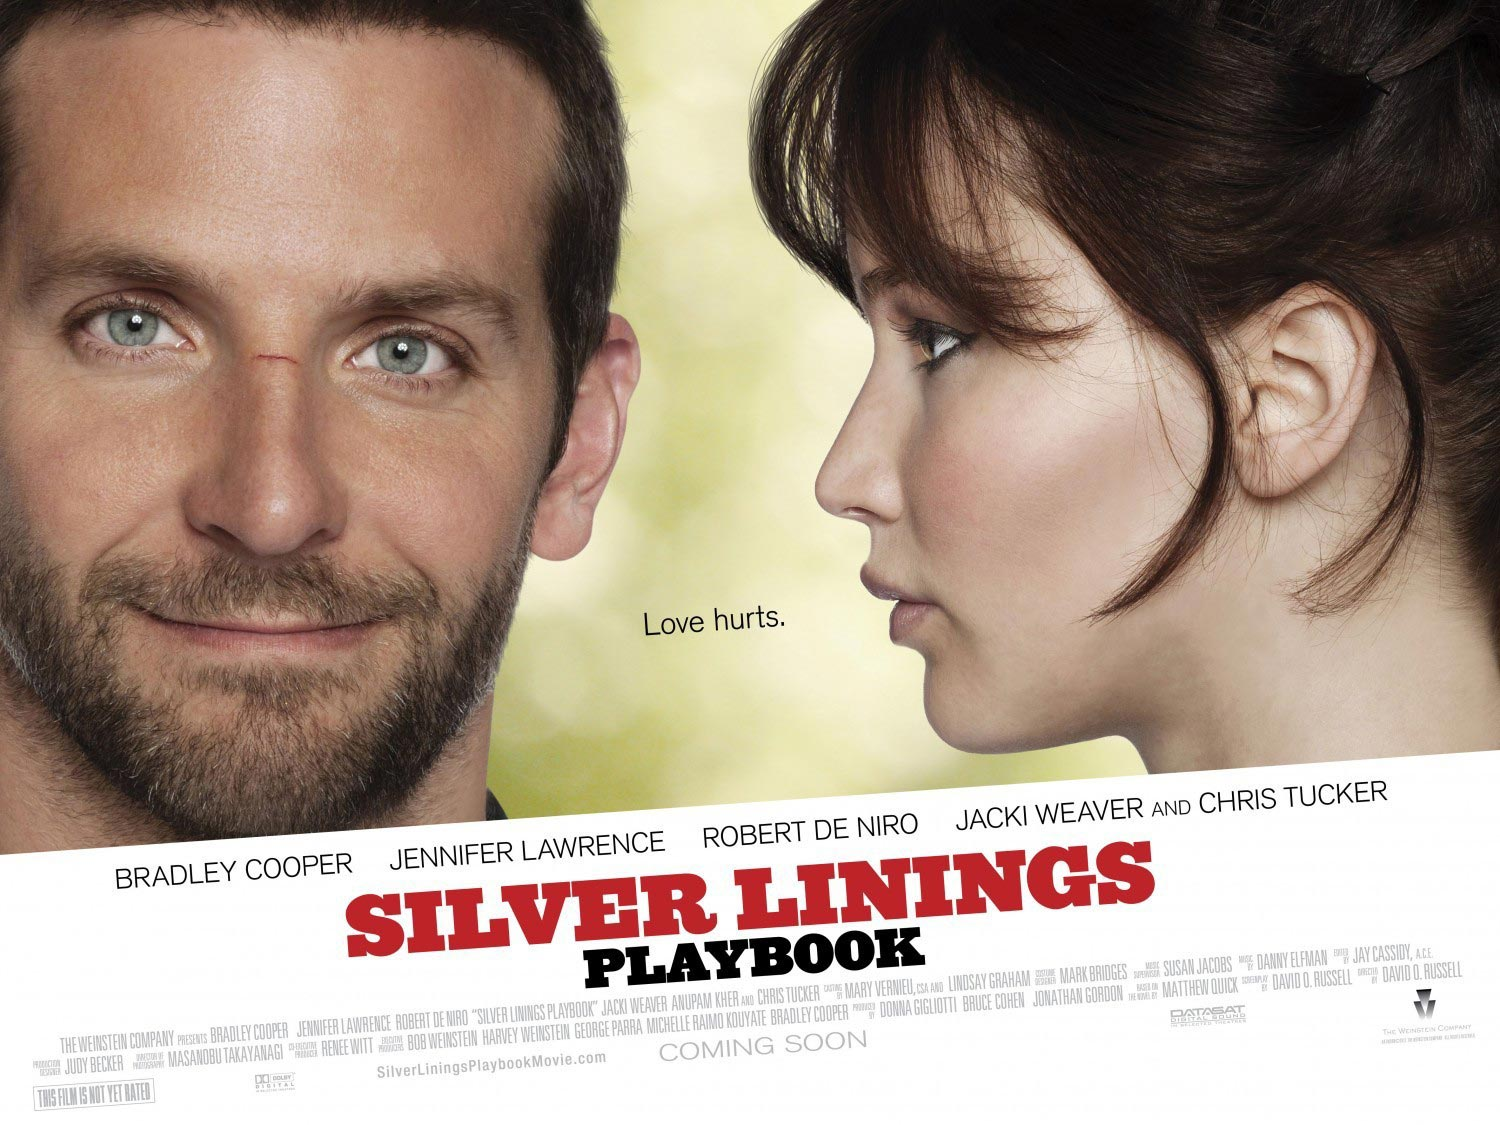 Silver-Linings-Playbook-poster1